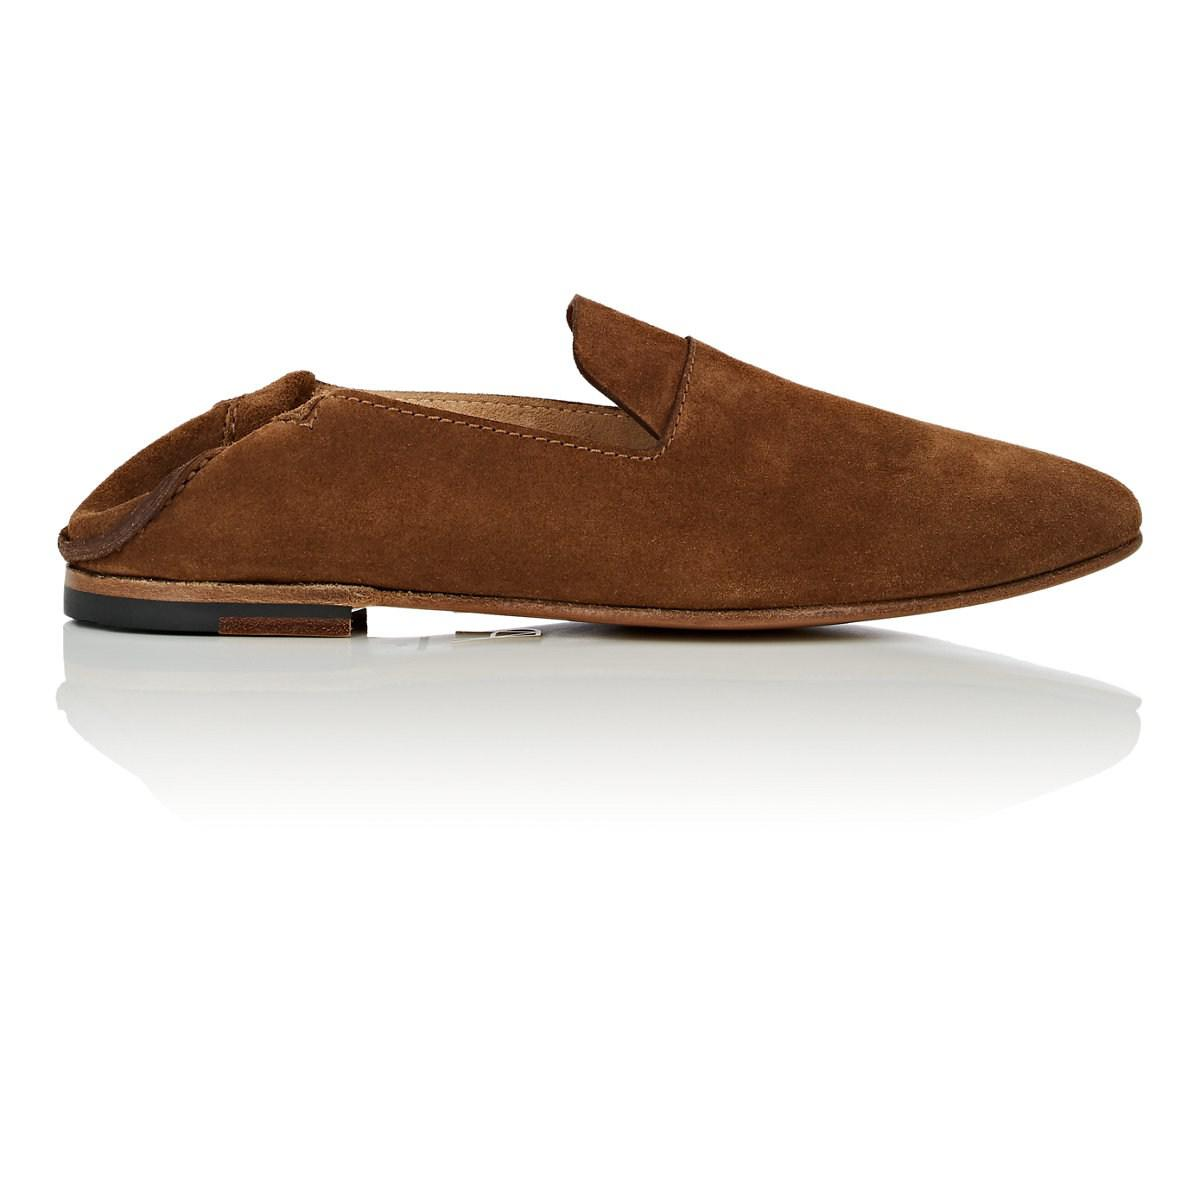 Discount Cheap For Cheap Mens Ellis Suede Venetian Loafers PAUL ANDREW Largest Supplier Online Sale Real 7ZbL0X